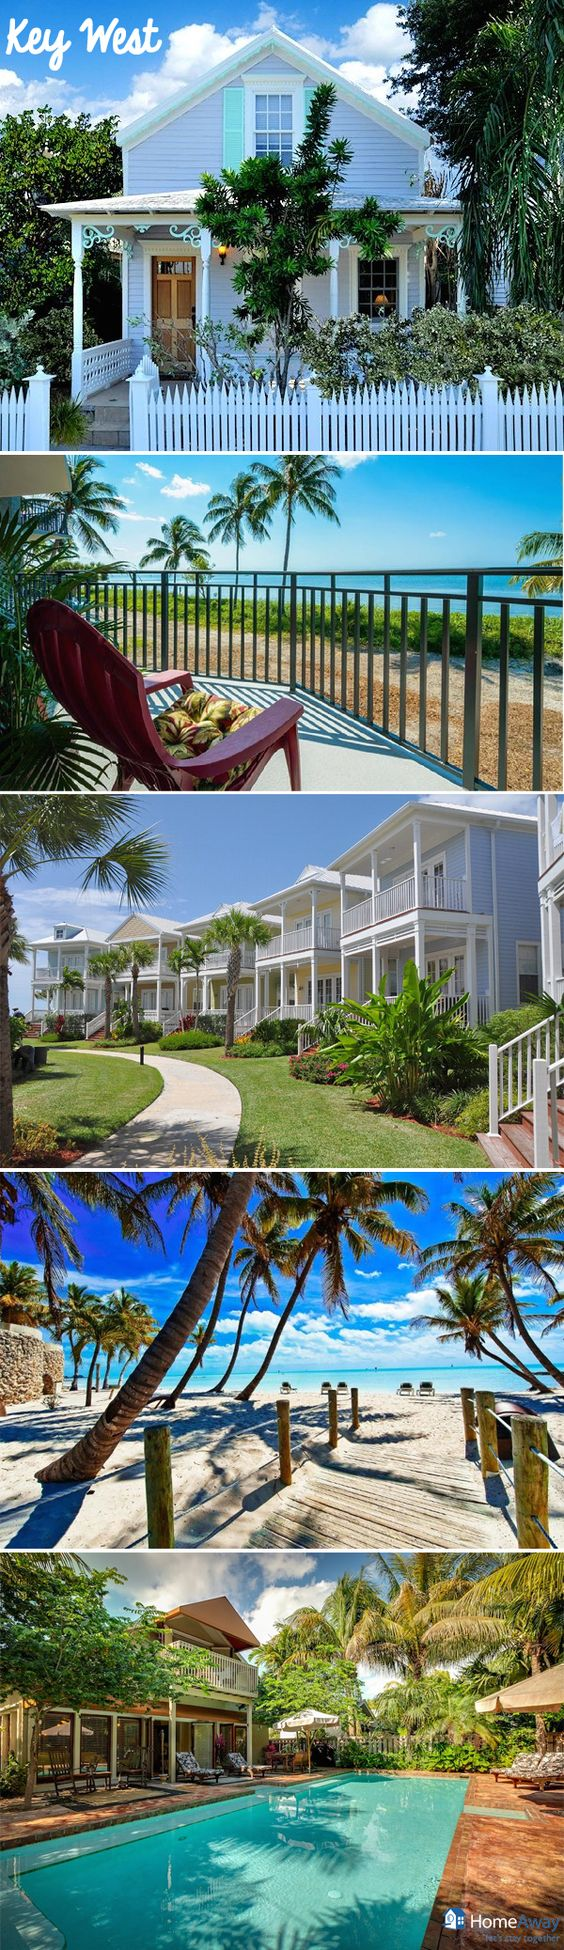 Think you have to spend a fortune to enjoy a Key West vacation? Think again! Check out these beach houses and start planning your next getaway now! via #HomeAway